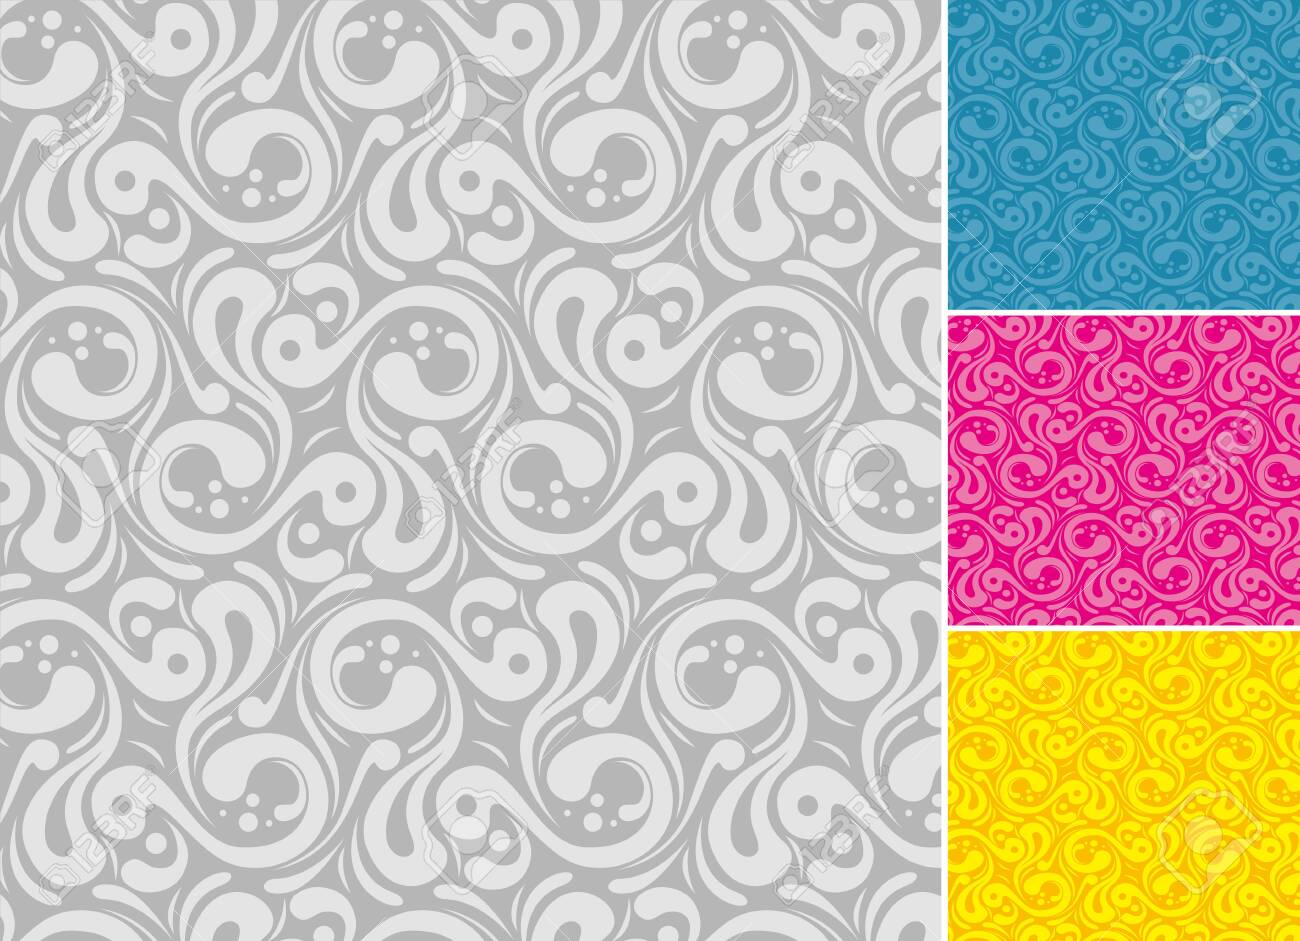 Abstract background texture. A combination of four different colors. - 131432204